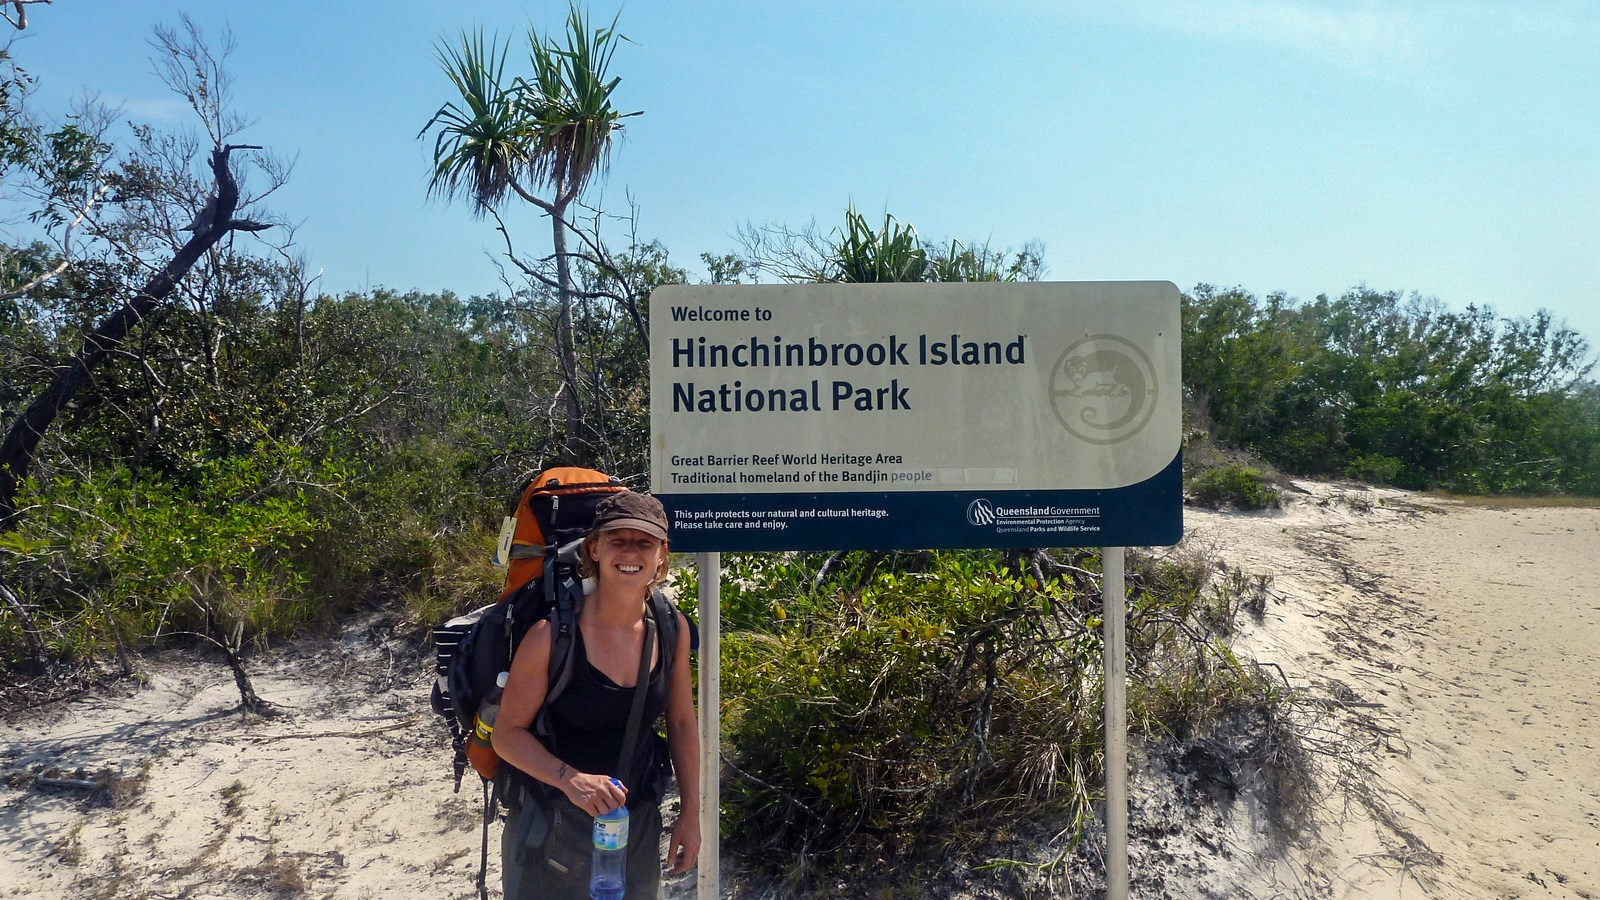 this is a photo of a hiker next to the sign showing the starting point of the hinchinbrook island trail